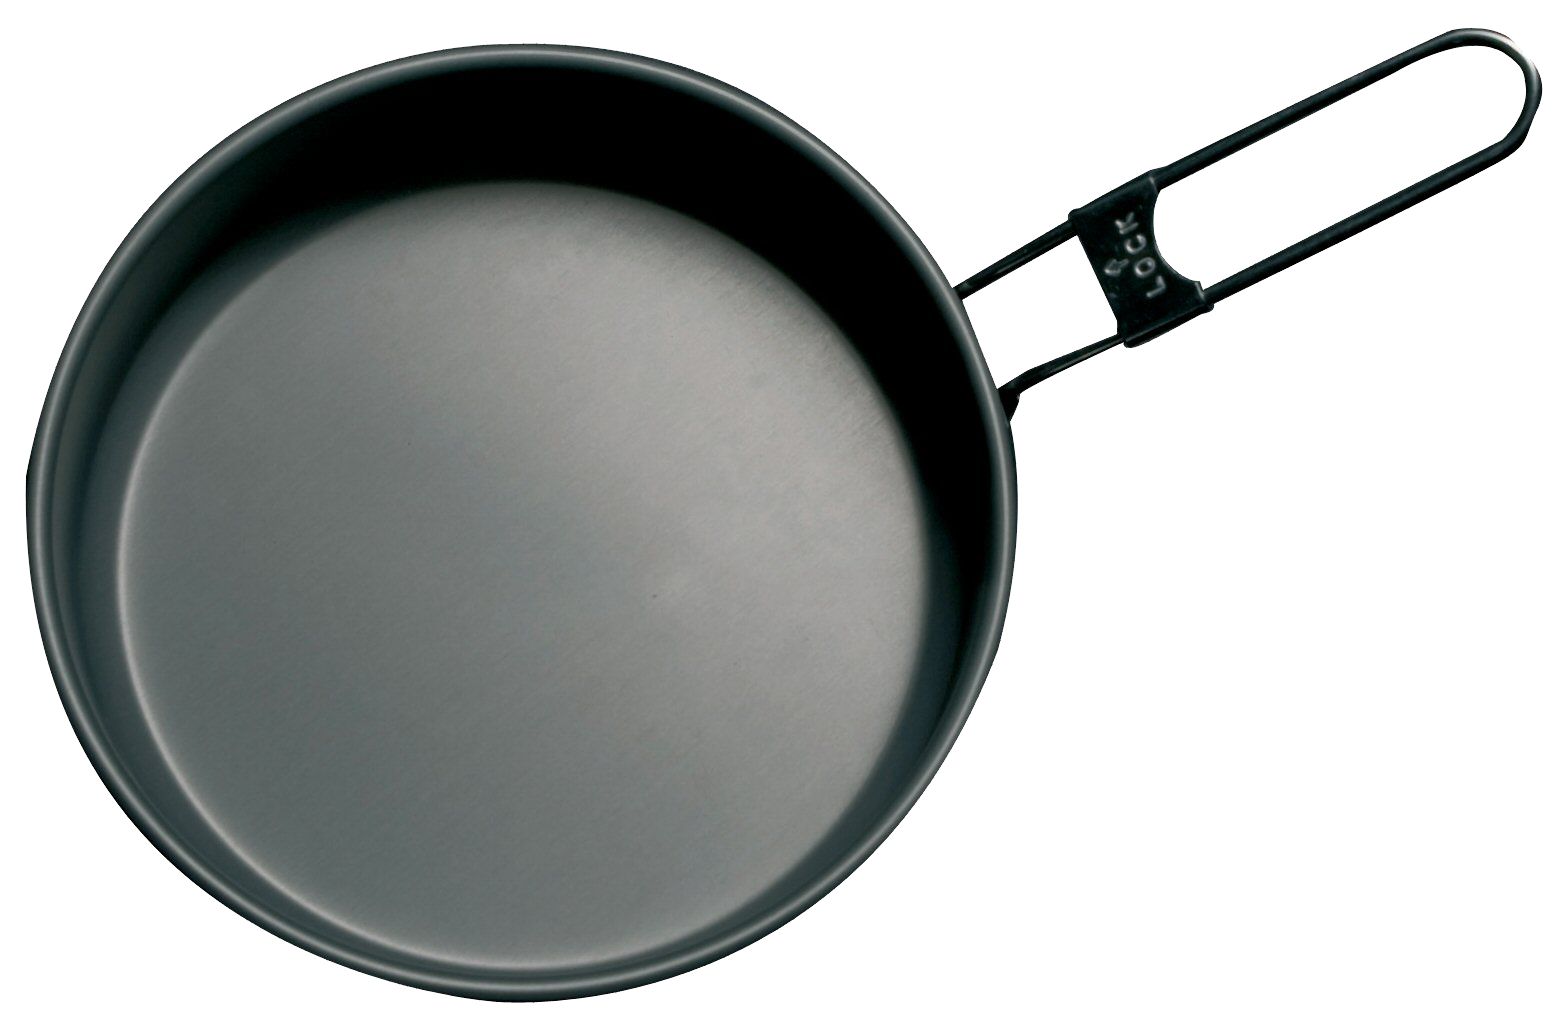 Fries clipart hot frying pan. Png images free download